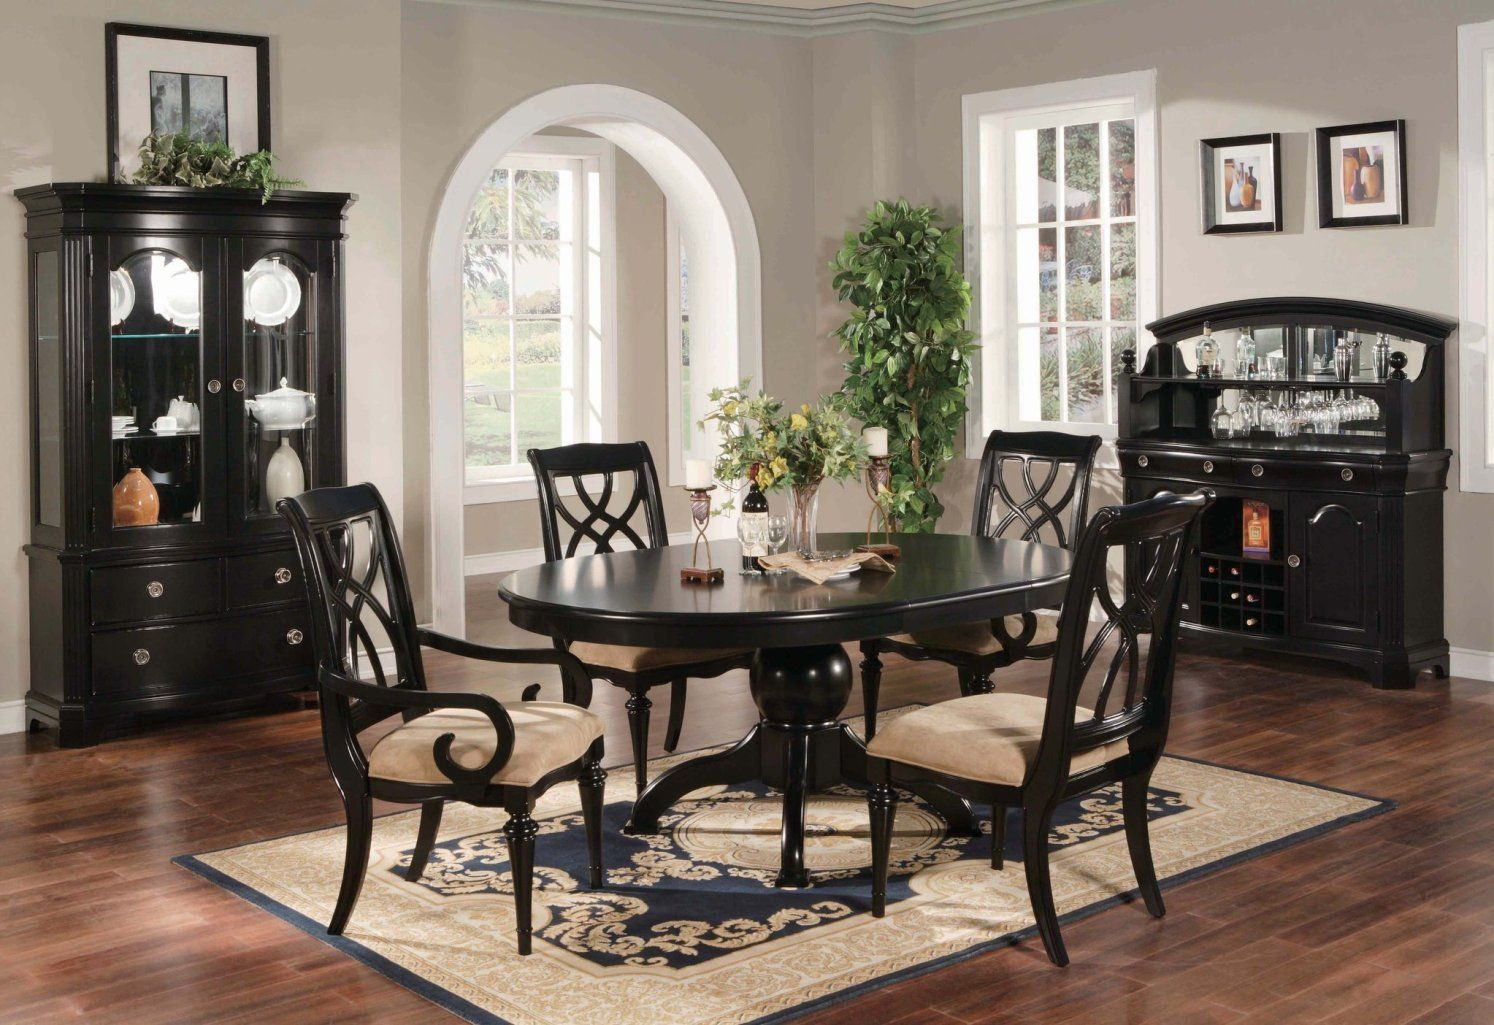 black dining table with wishbone chairs